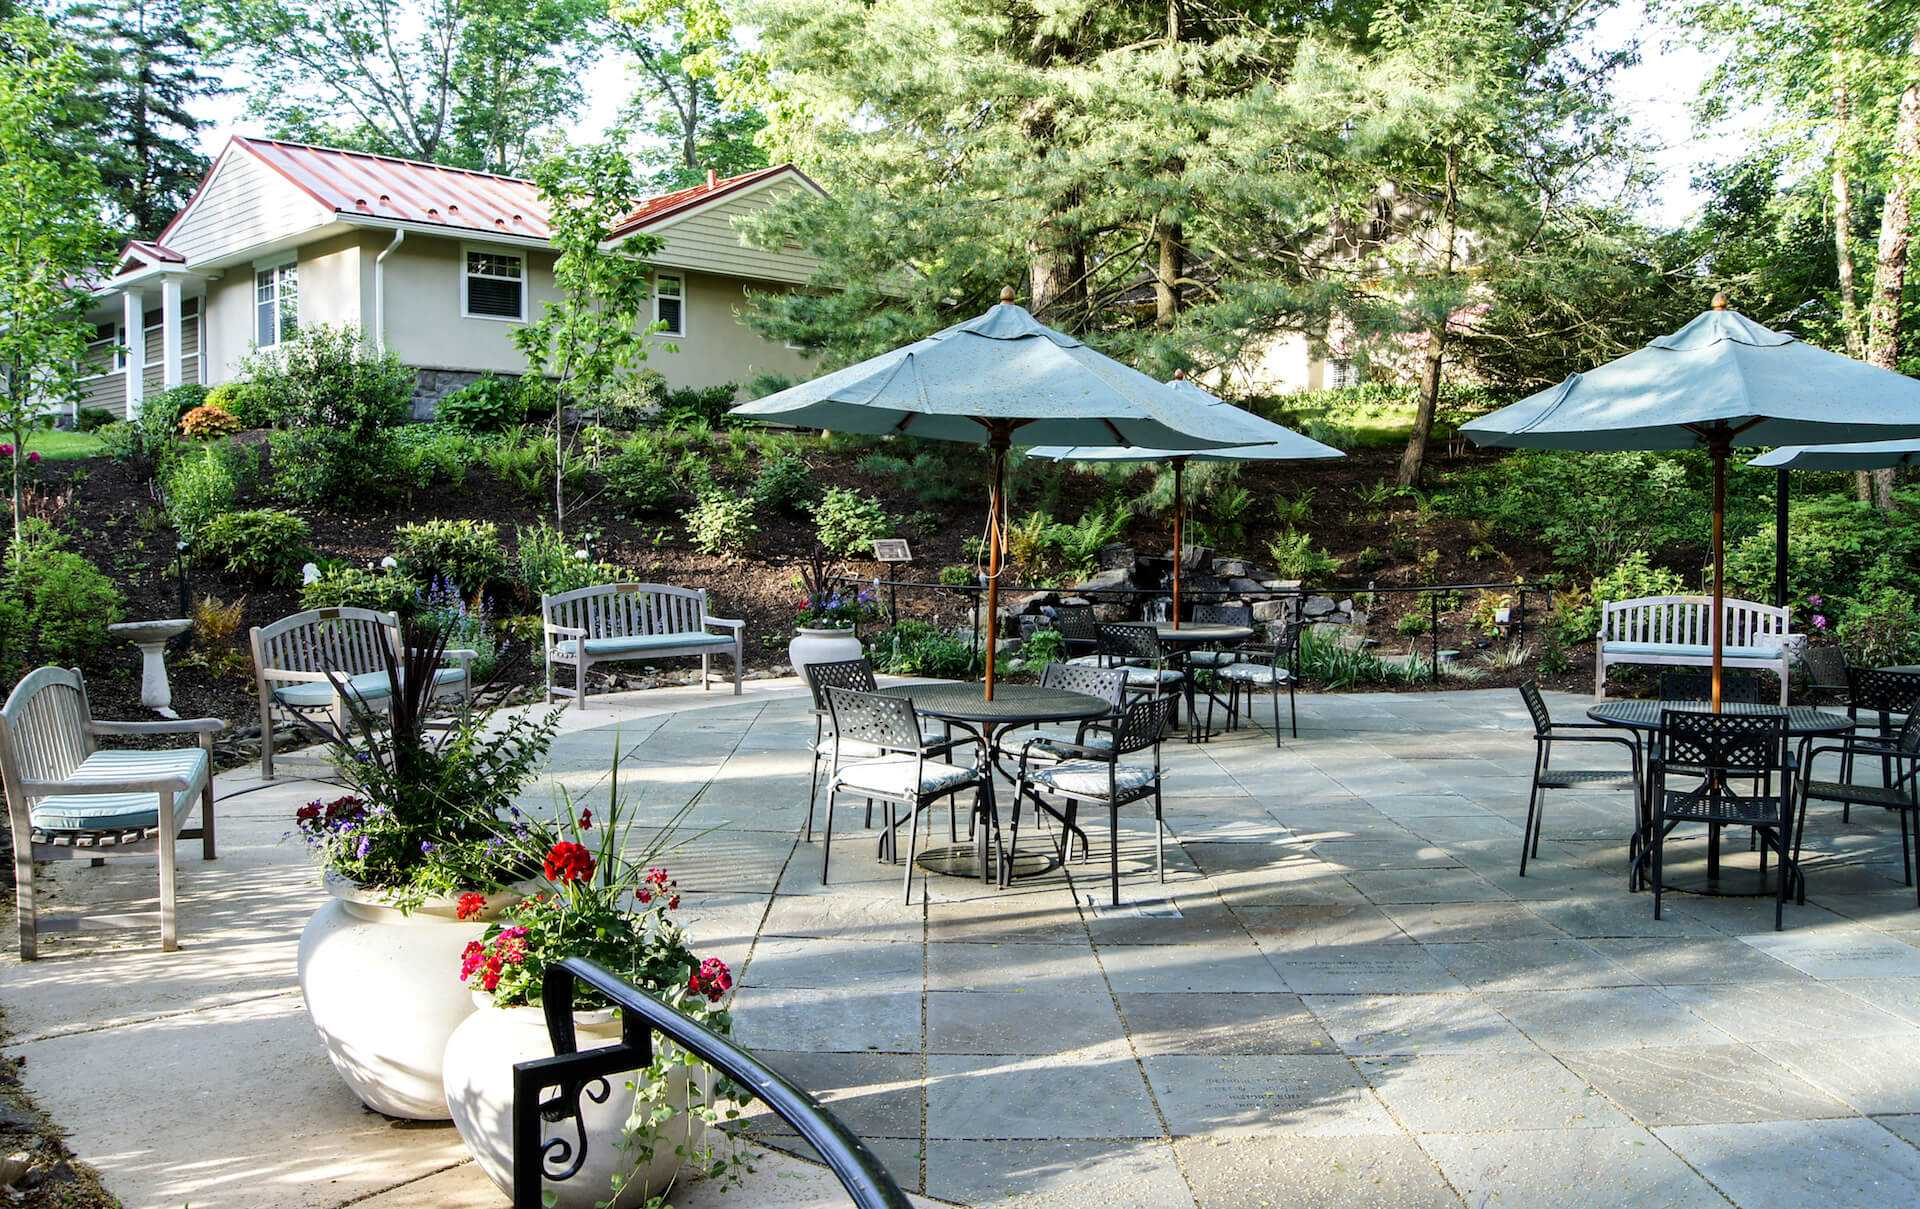 Rosemont outdoor dining area surrounded by landscaping